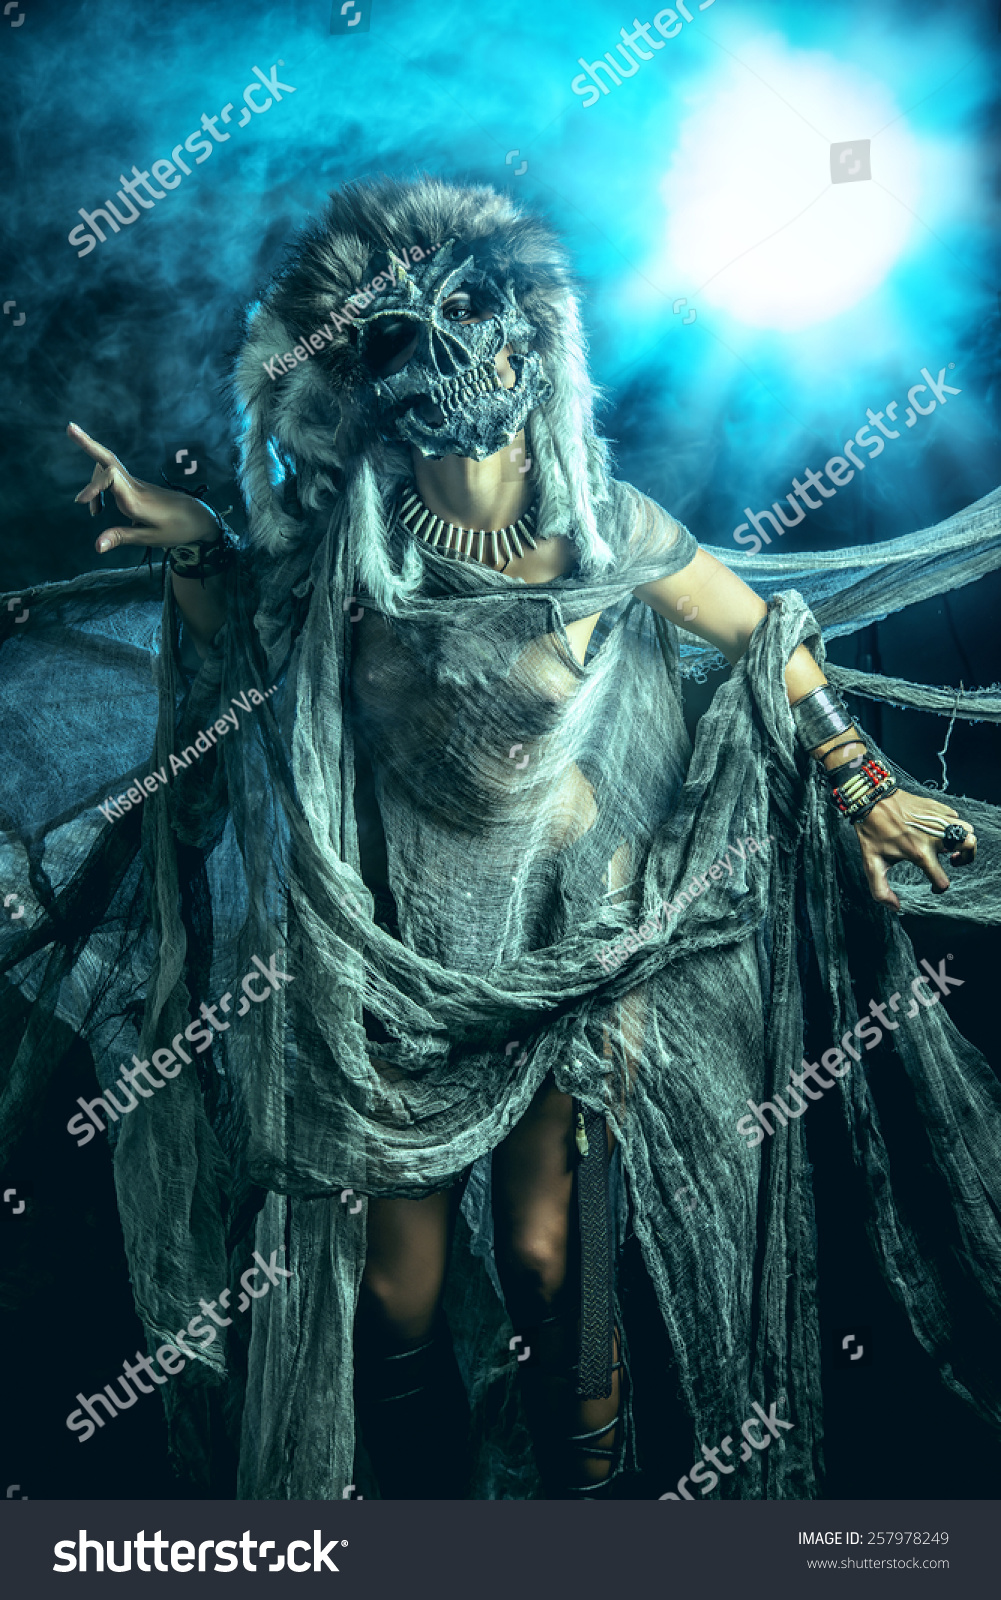 frightening female wearing mask of skull fantasy halloween witchcraft voodoo dances